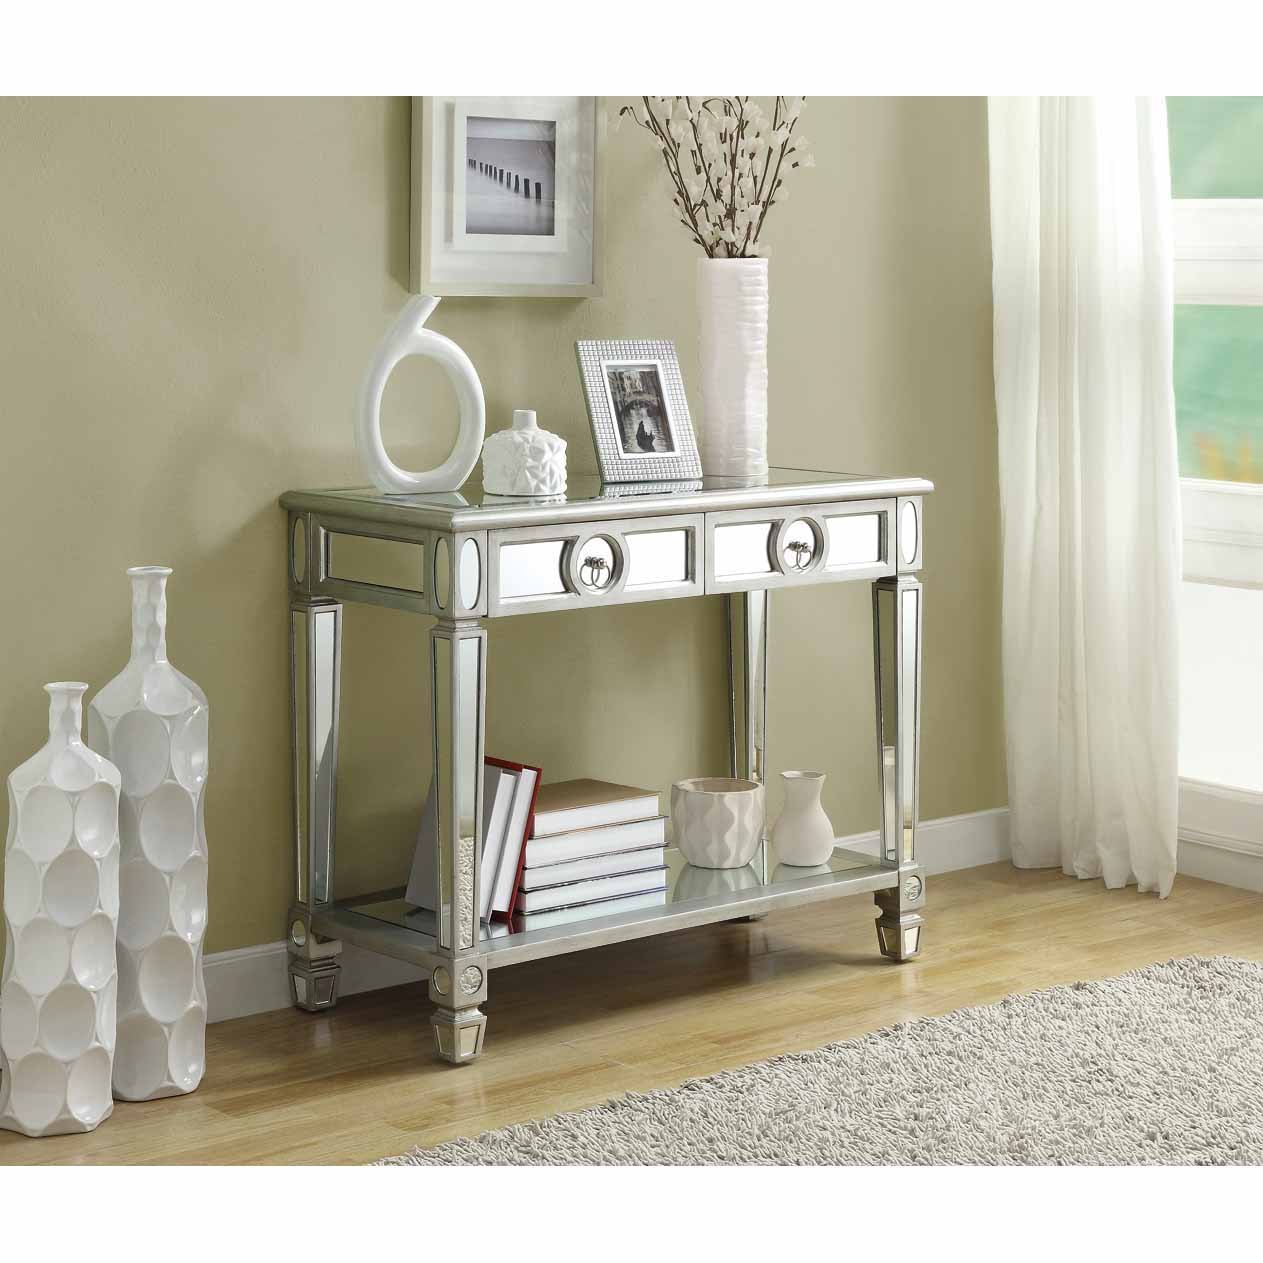 Sofa Table Pics: Mirrored 38-inch Sofa Console Table With Two Drawers